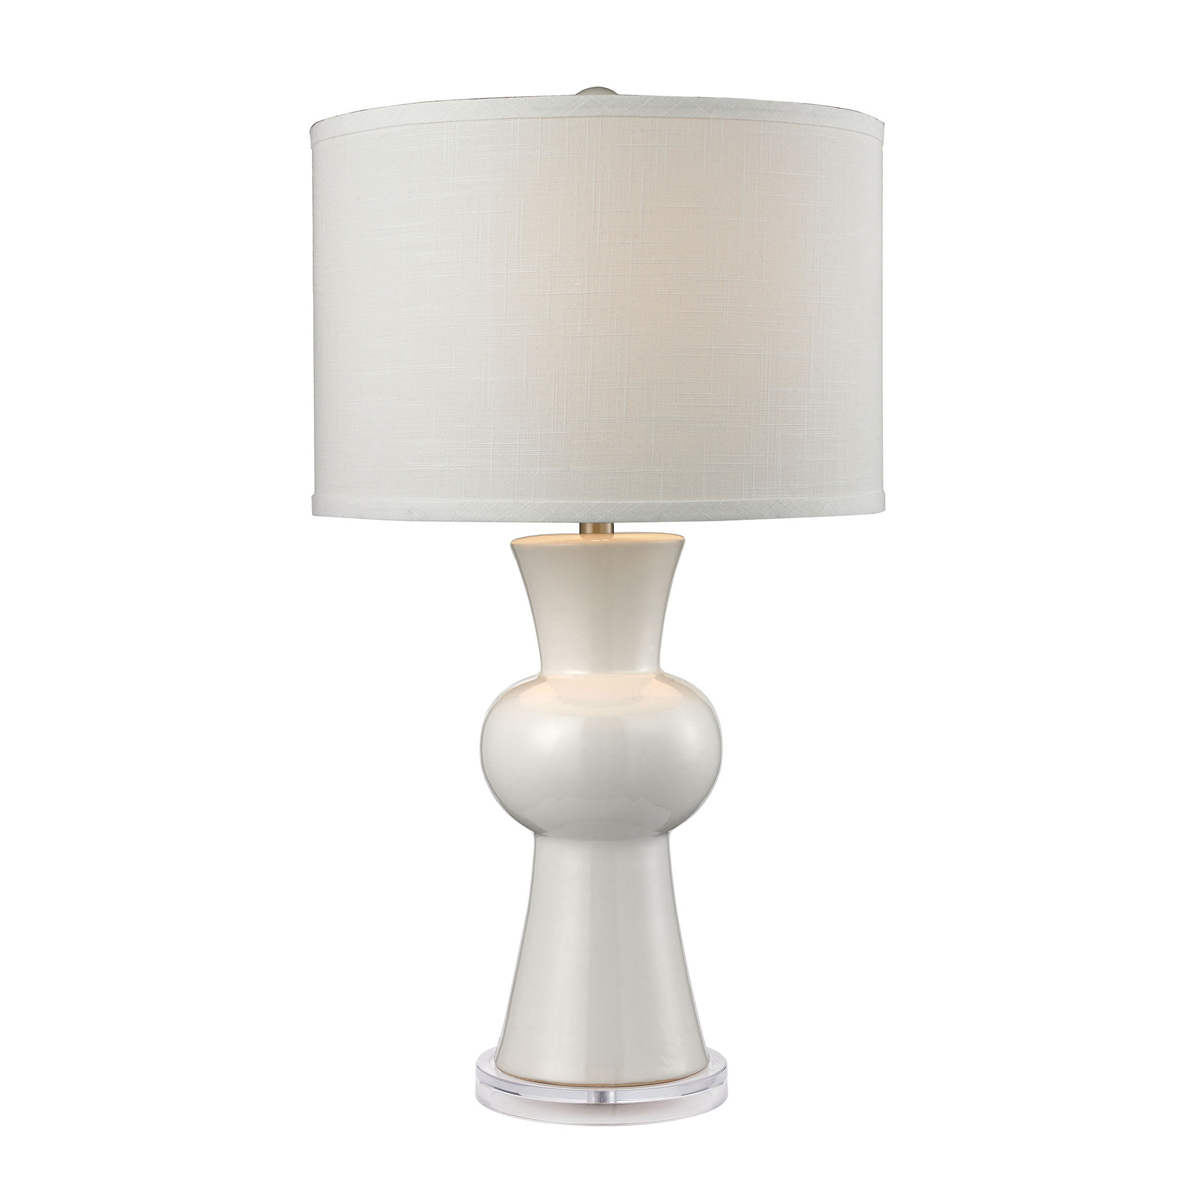 dimond lighting d2618 white ceramic table lamp with textured white. Black Bedroom Furniture Sets. Home Design Ideas